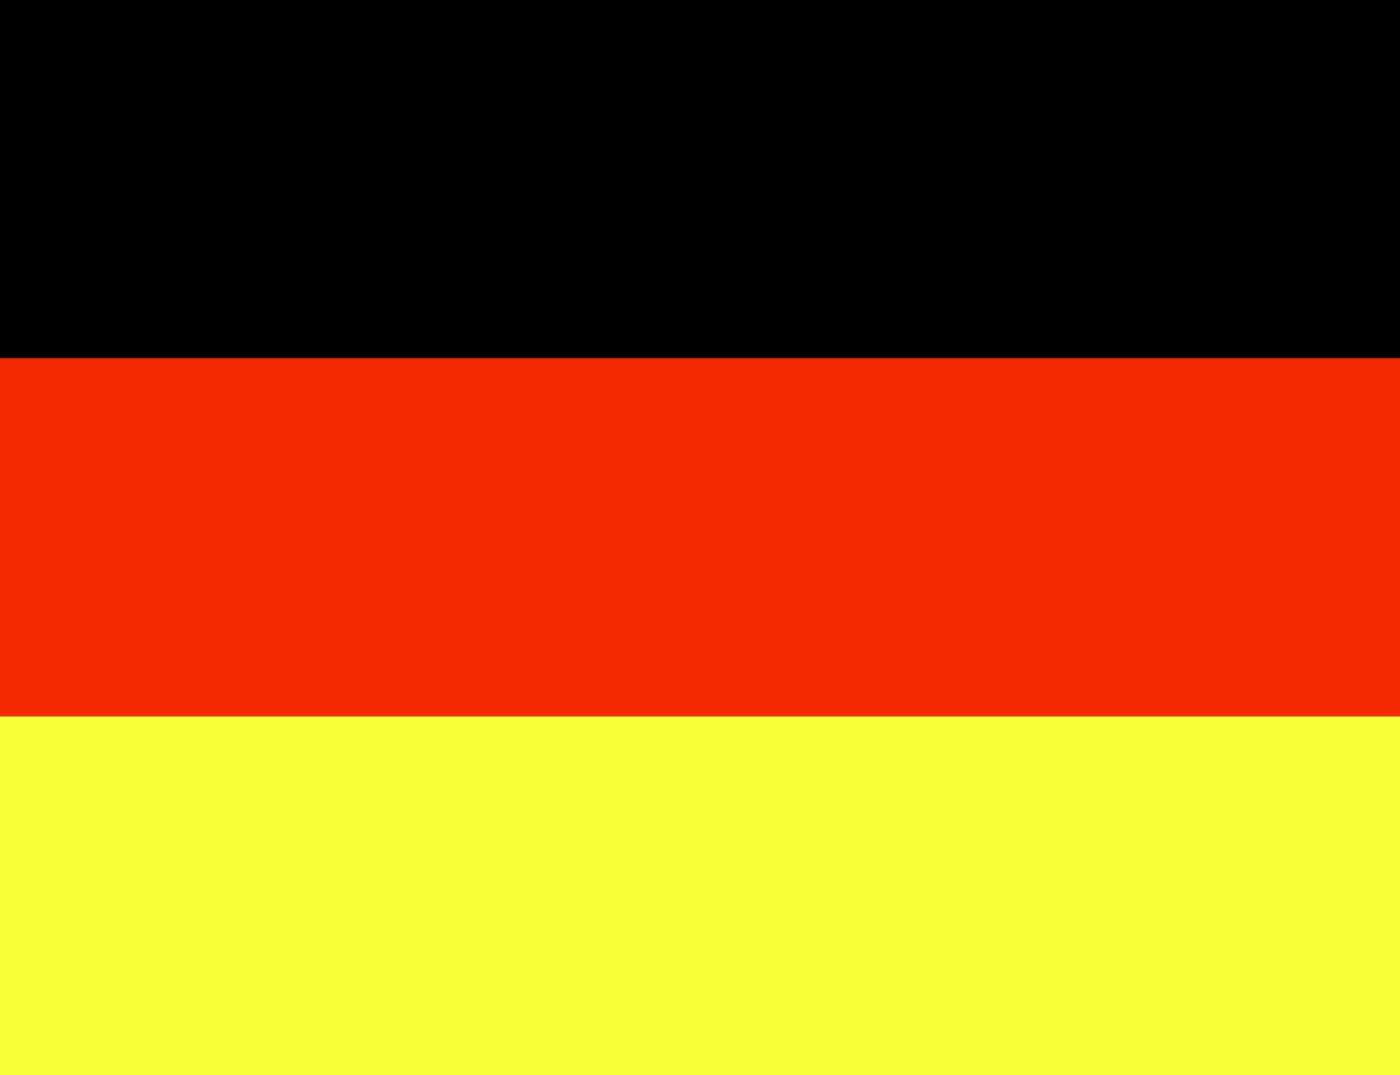 Wallpapers For German Flag Wallpaper 1400x1075